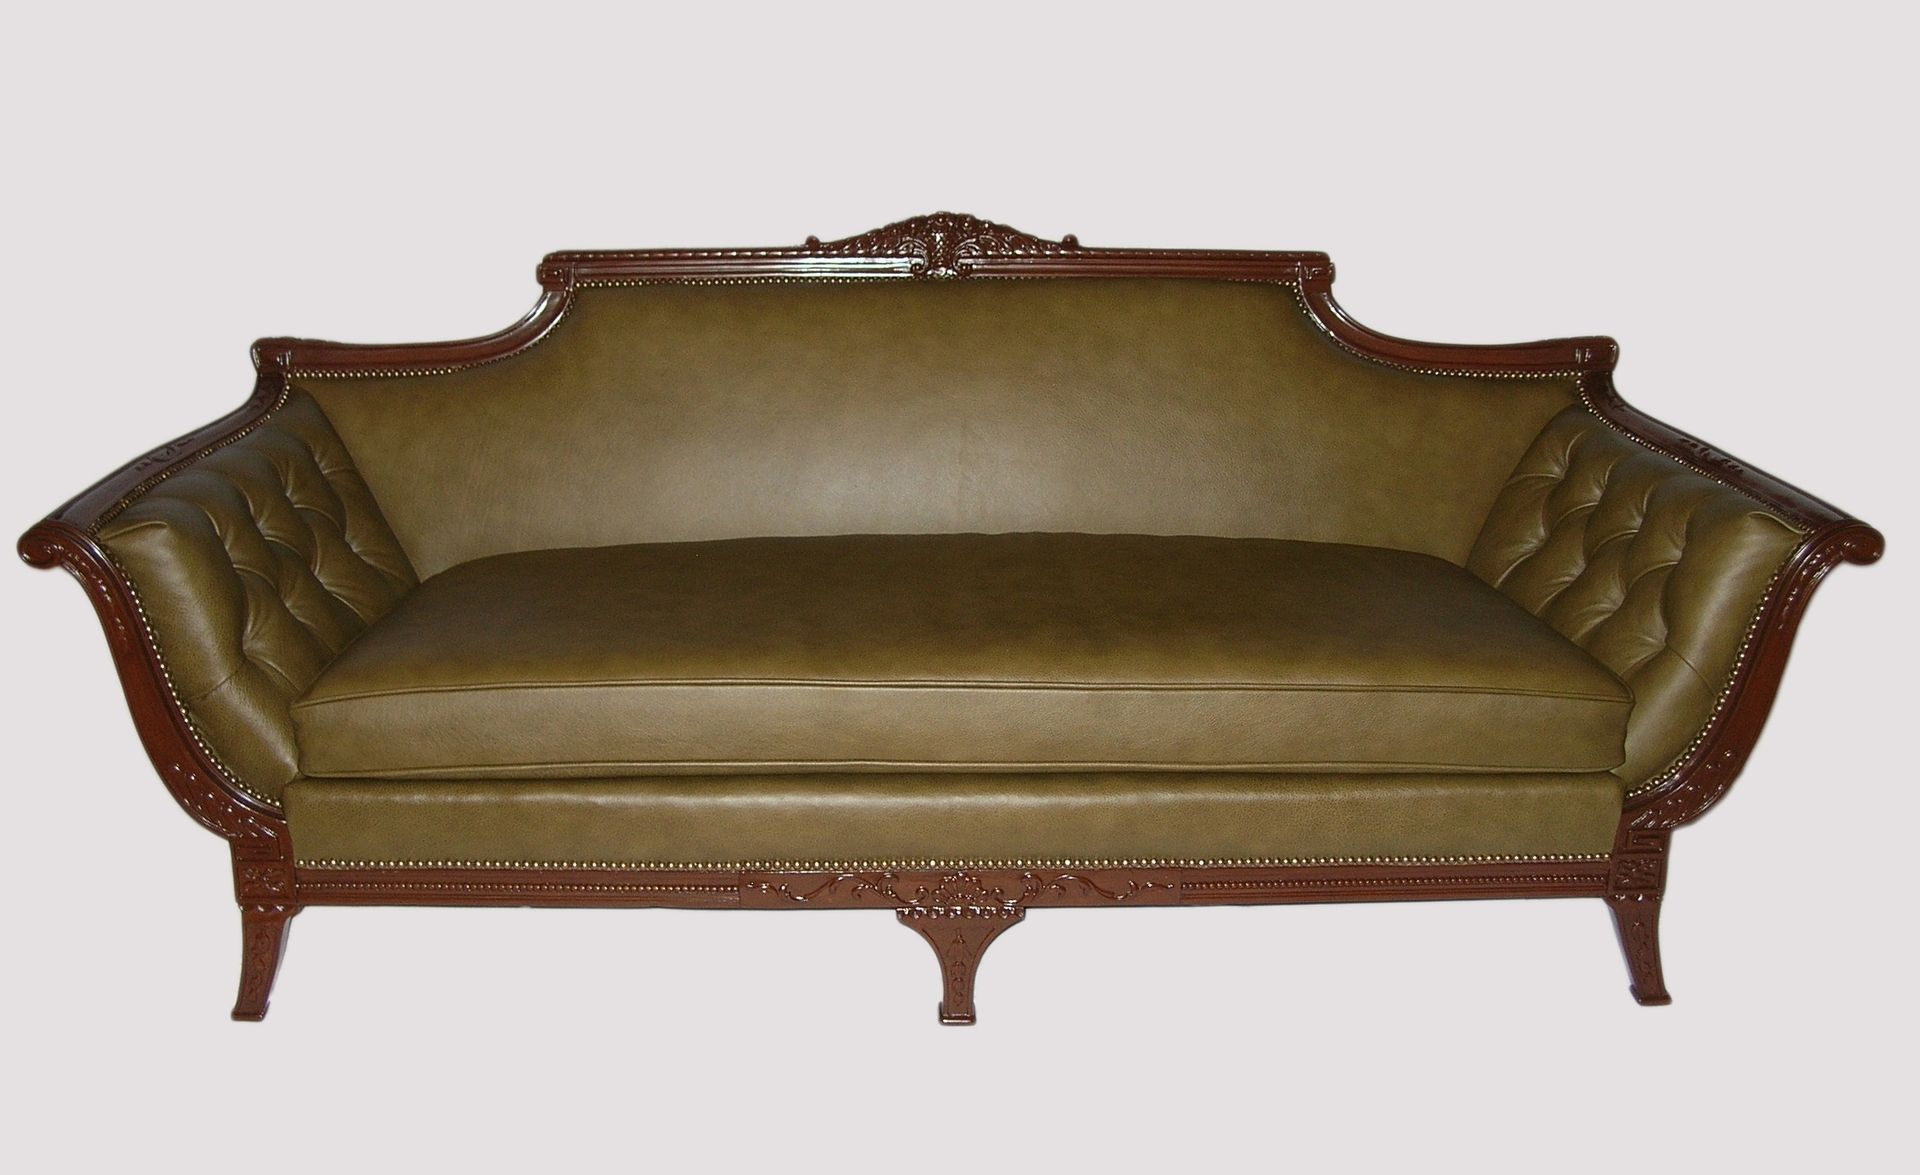 buy a custom philadelphia colonial sofa made to order. Black Bedroom Furniture Sets. Home Design Ideas